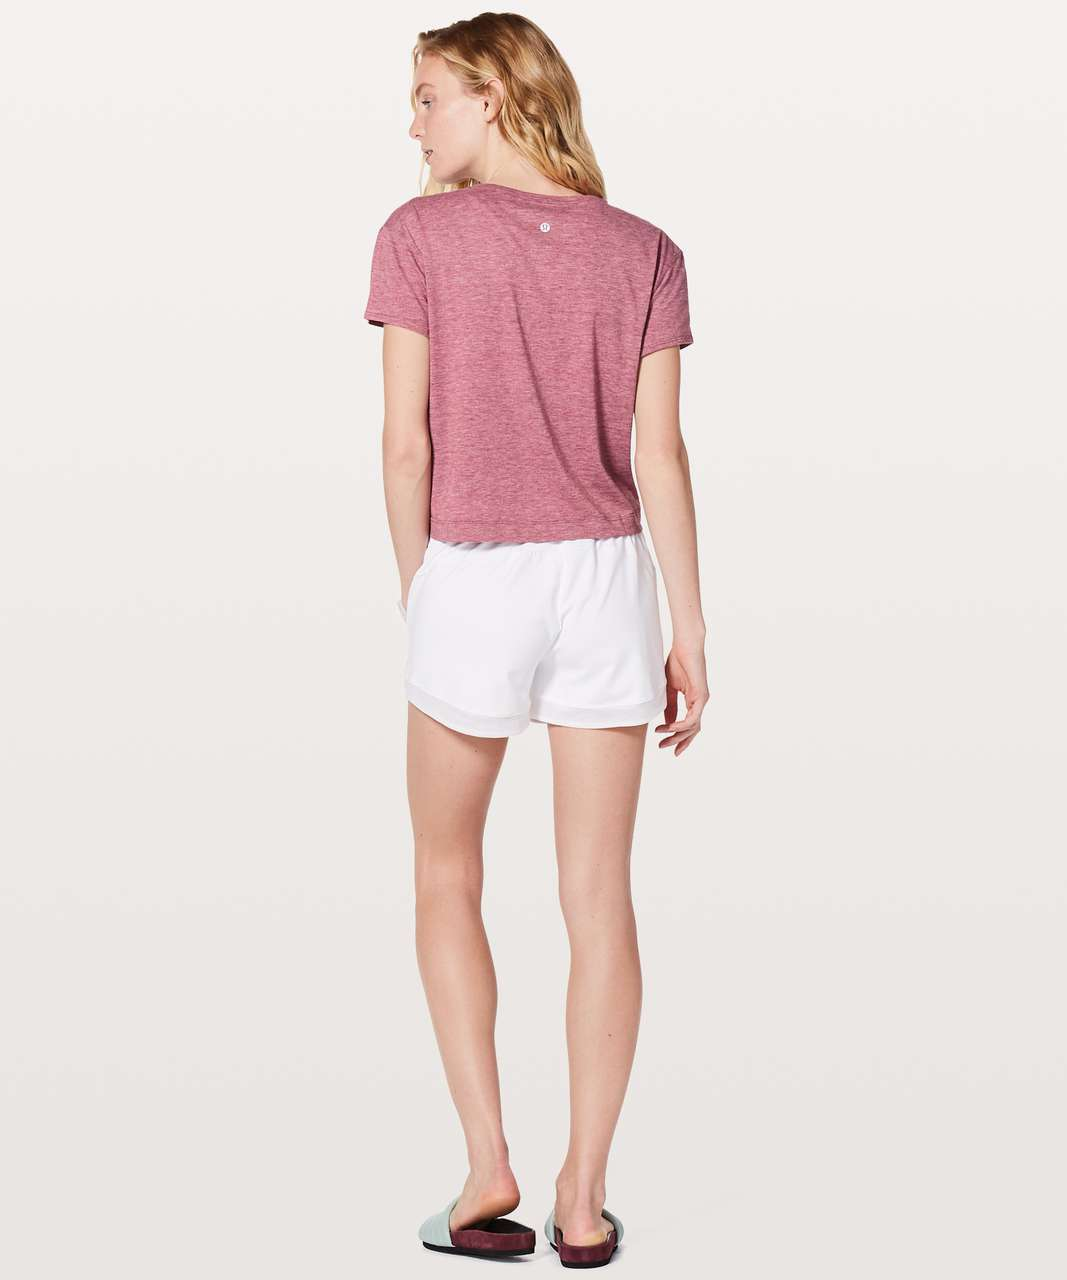 Lululemon Short Notice Tee - Heathered Moss Rose